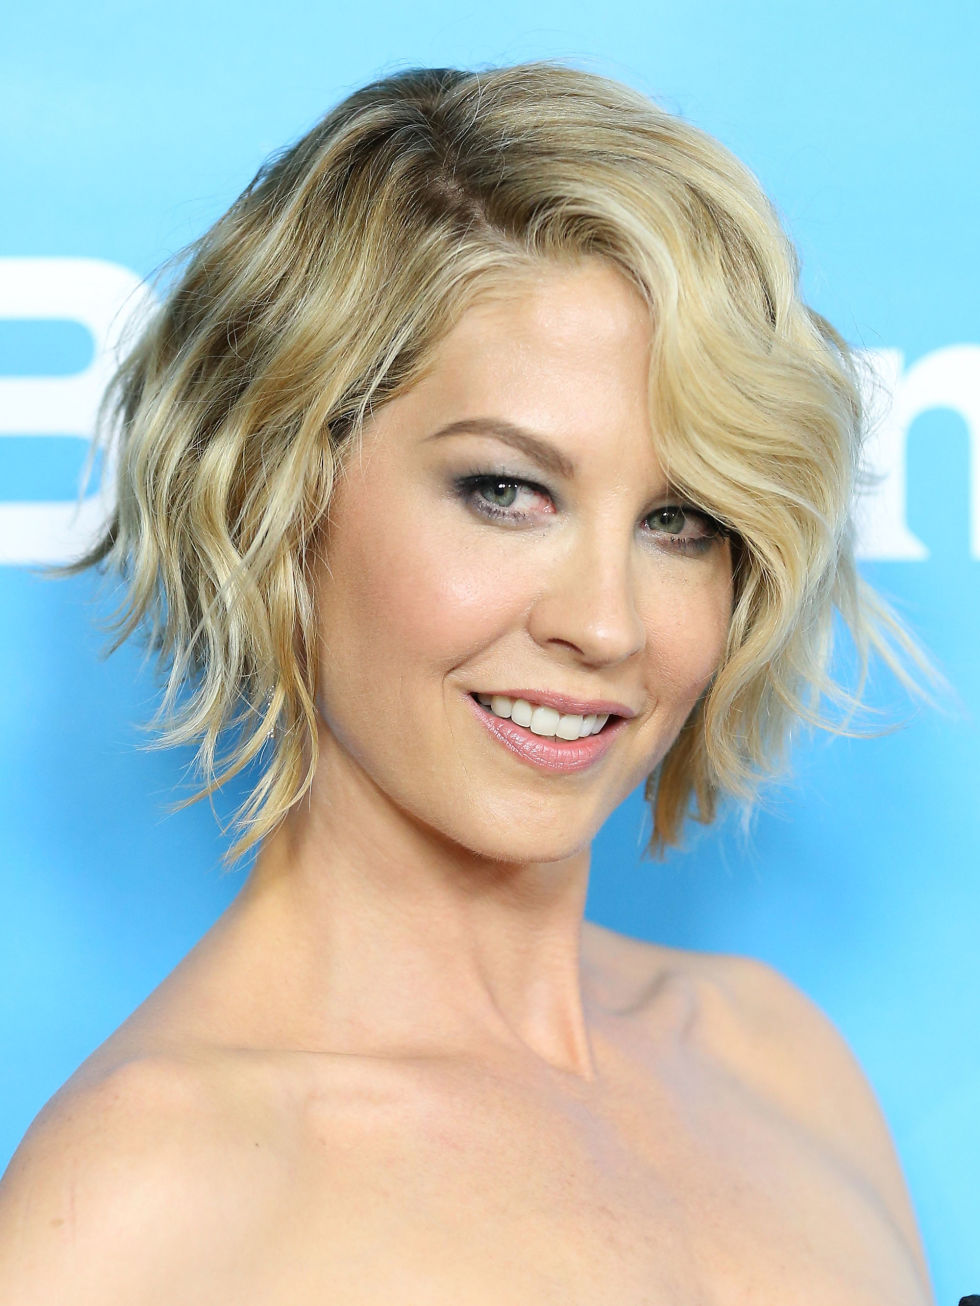 Swell How To Grow Out Your Hair Celebs Growing Out Short Hair Short Hairstyles Gunalazisus